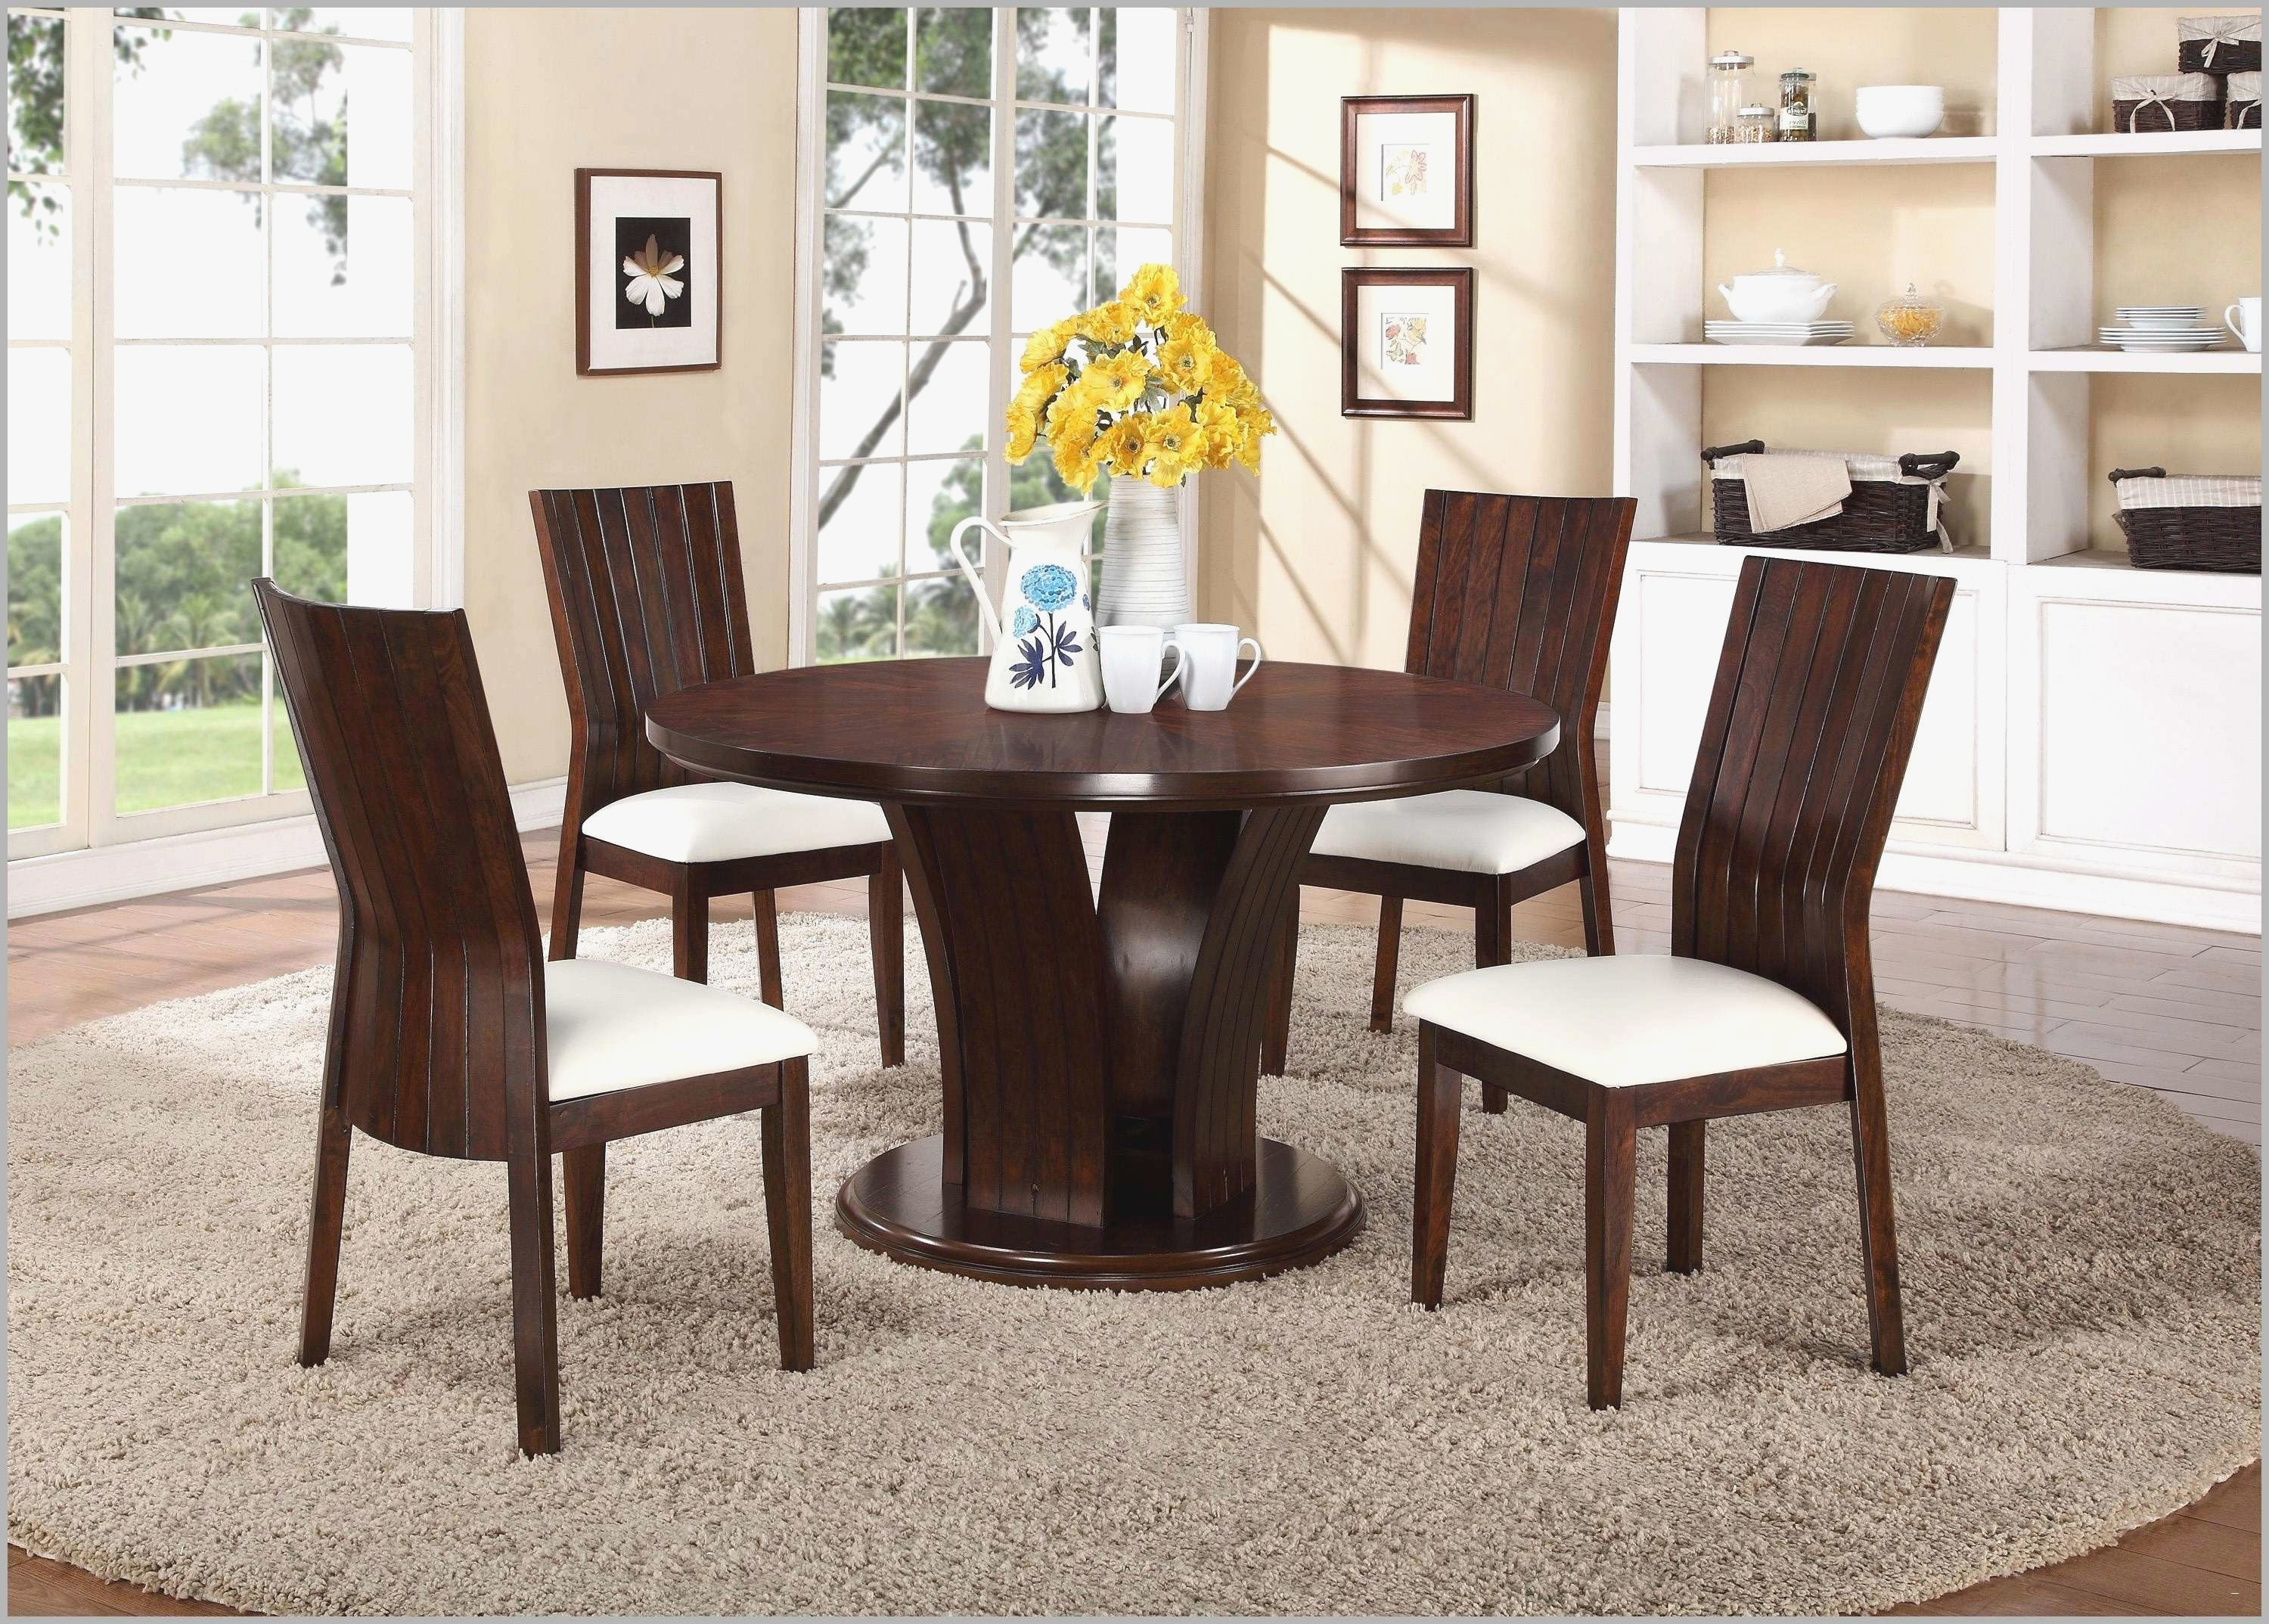 8 Seater Dining Tables And Chairs In Recent 8 Seater Dining Table Beautiful 8 Seater Dining Table Set Awesome  (View 17 of 25)